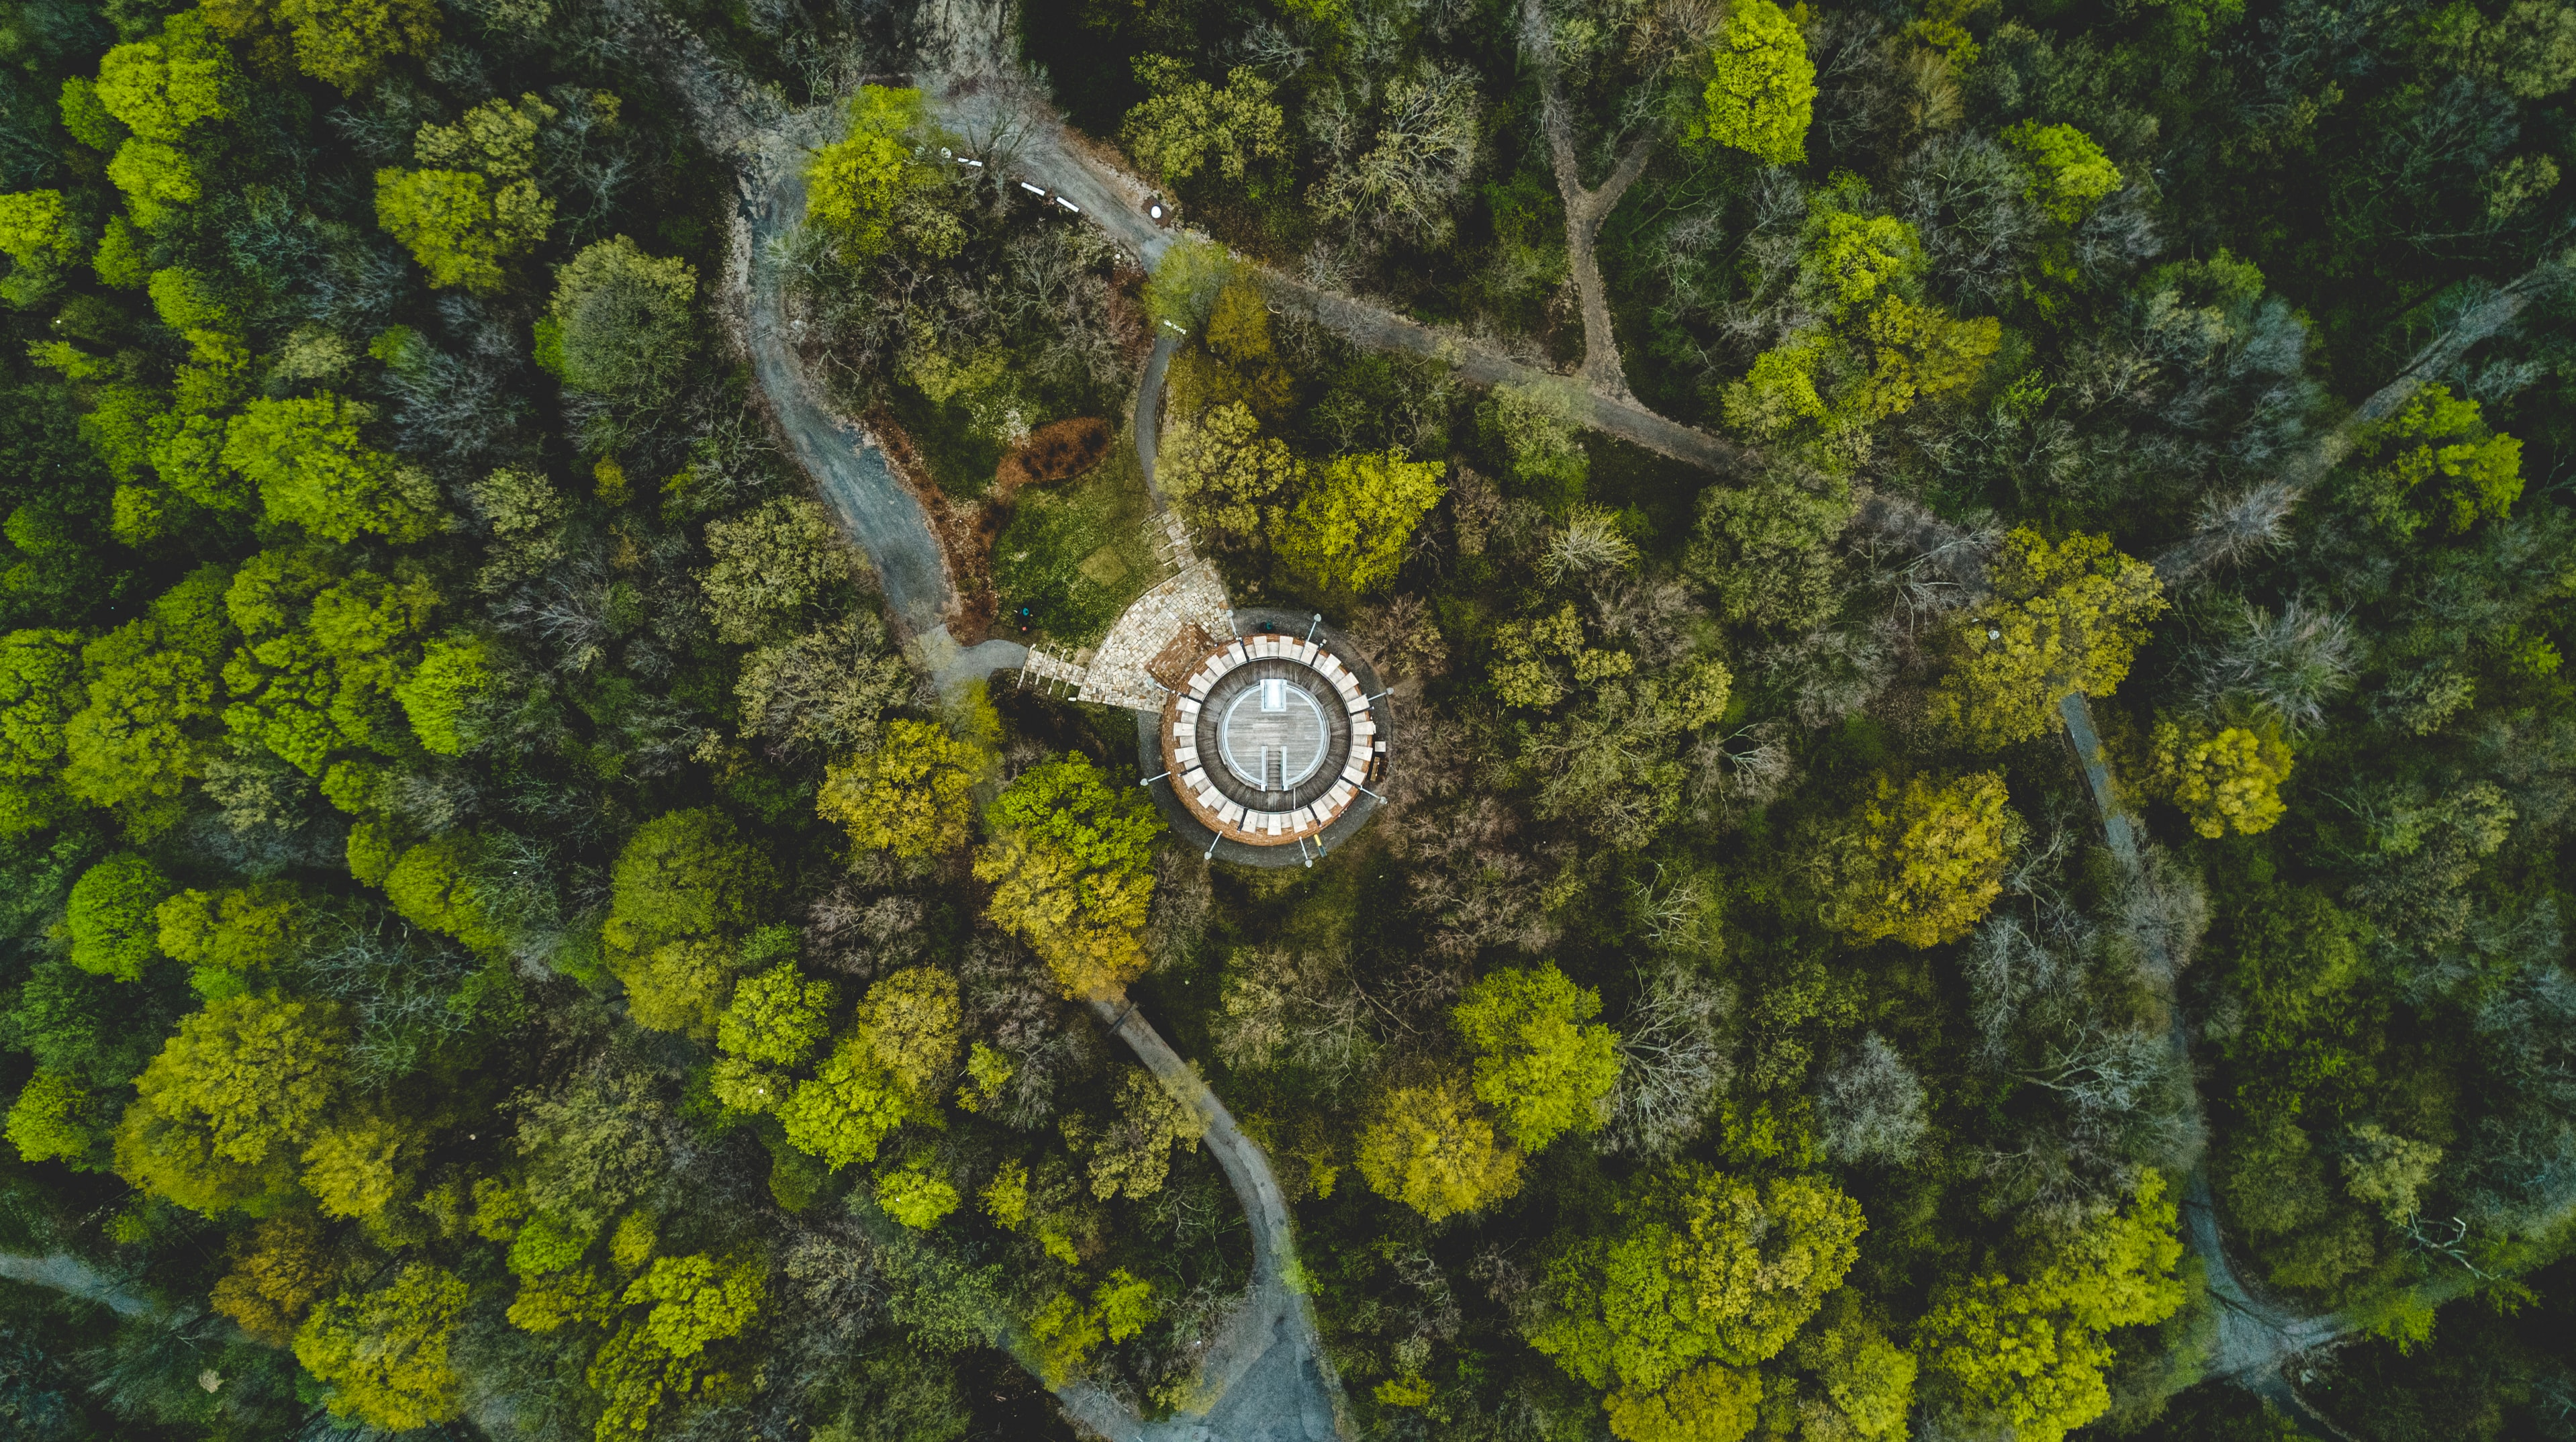 A drone shot of a round building in a wooded area with narrow footpaths